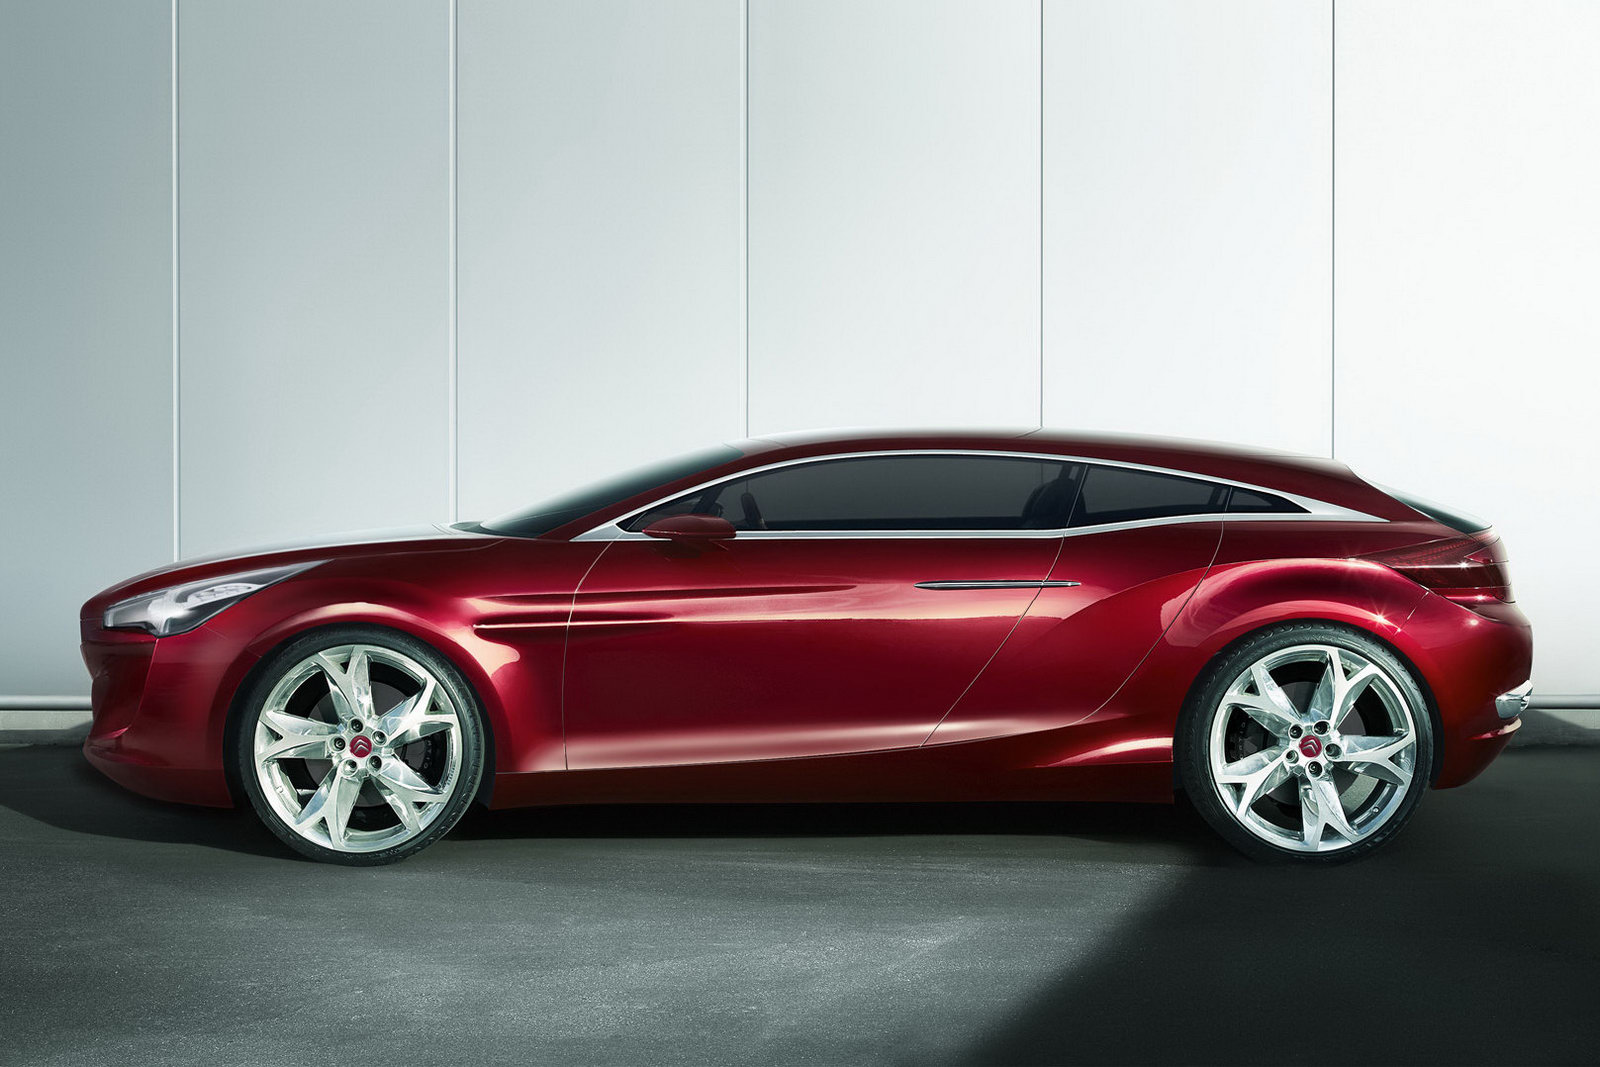 2020 gqbycitroen concept car wallpapers - Page 7 of 10 HD Wallpapers and backgrounds